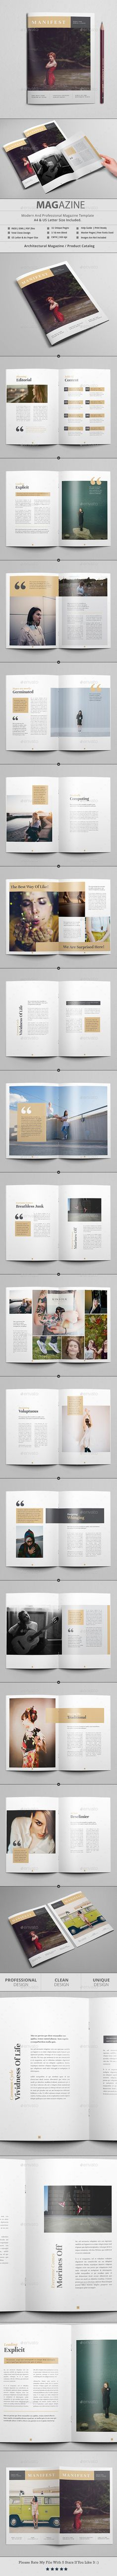 Manifest Magazine / Lookbook by Al-Mamun Specification:You Can use this Magazine for any type ofFashion Company, Modeling, Multipurpose, Design House,Product etc Indesign